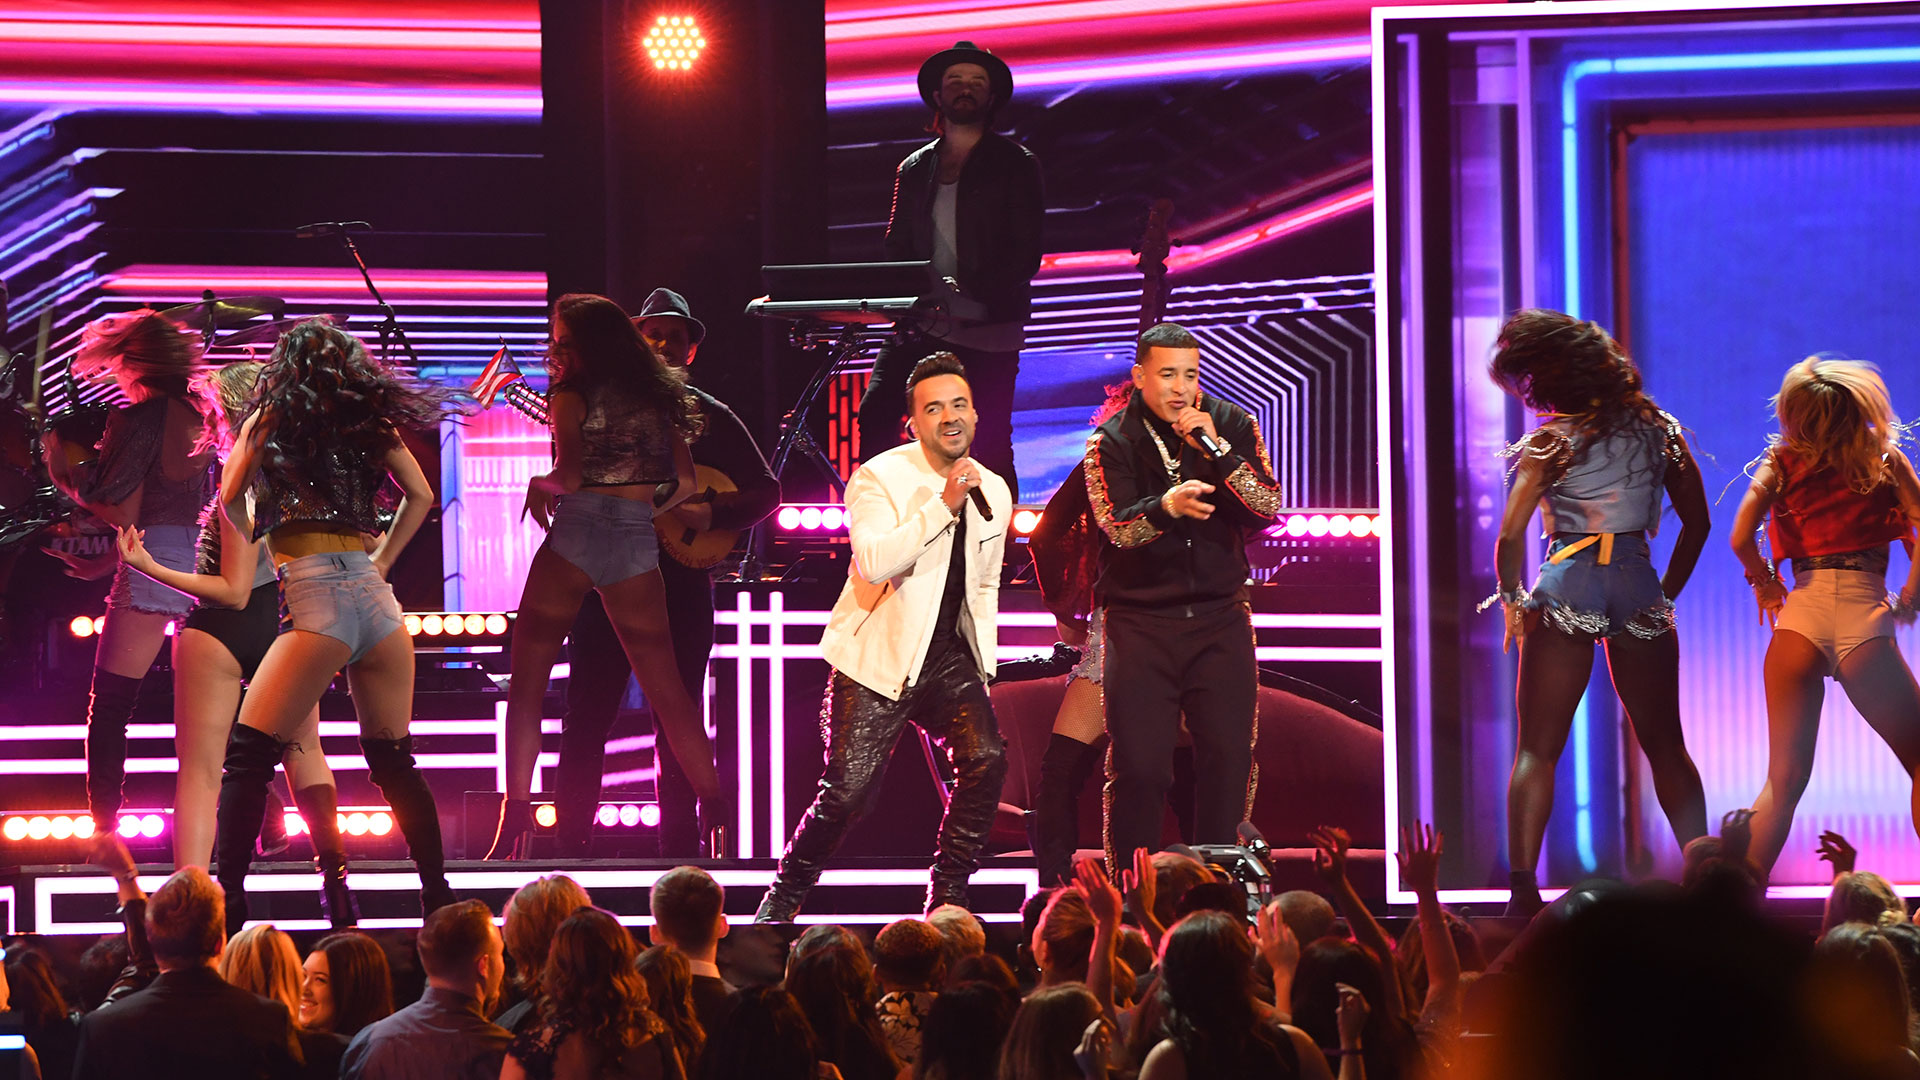 Luis Fonsi, Daddy Yankee, and Zuleyka Rivera light up the stage with their electric dance hit